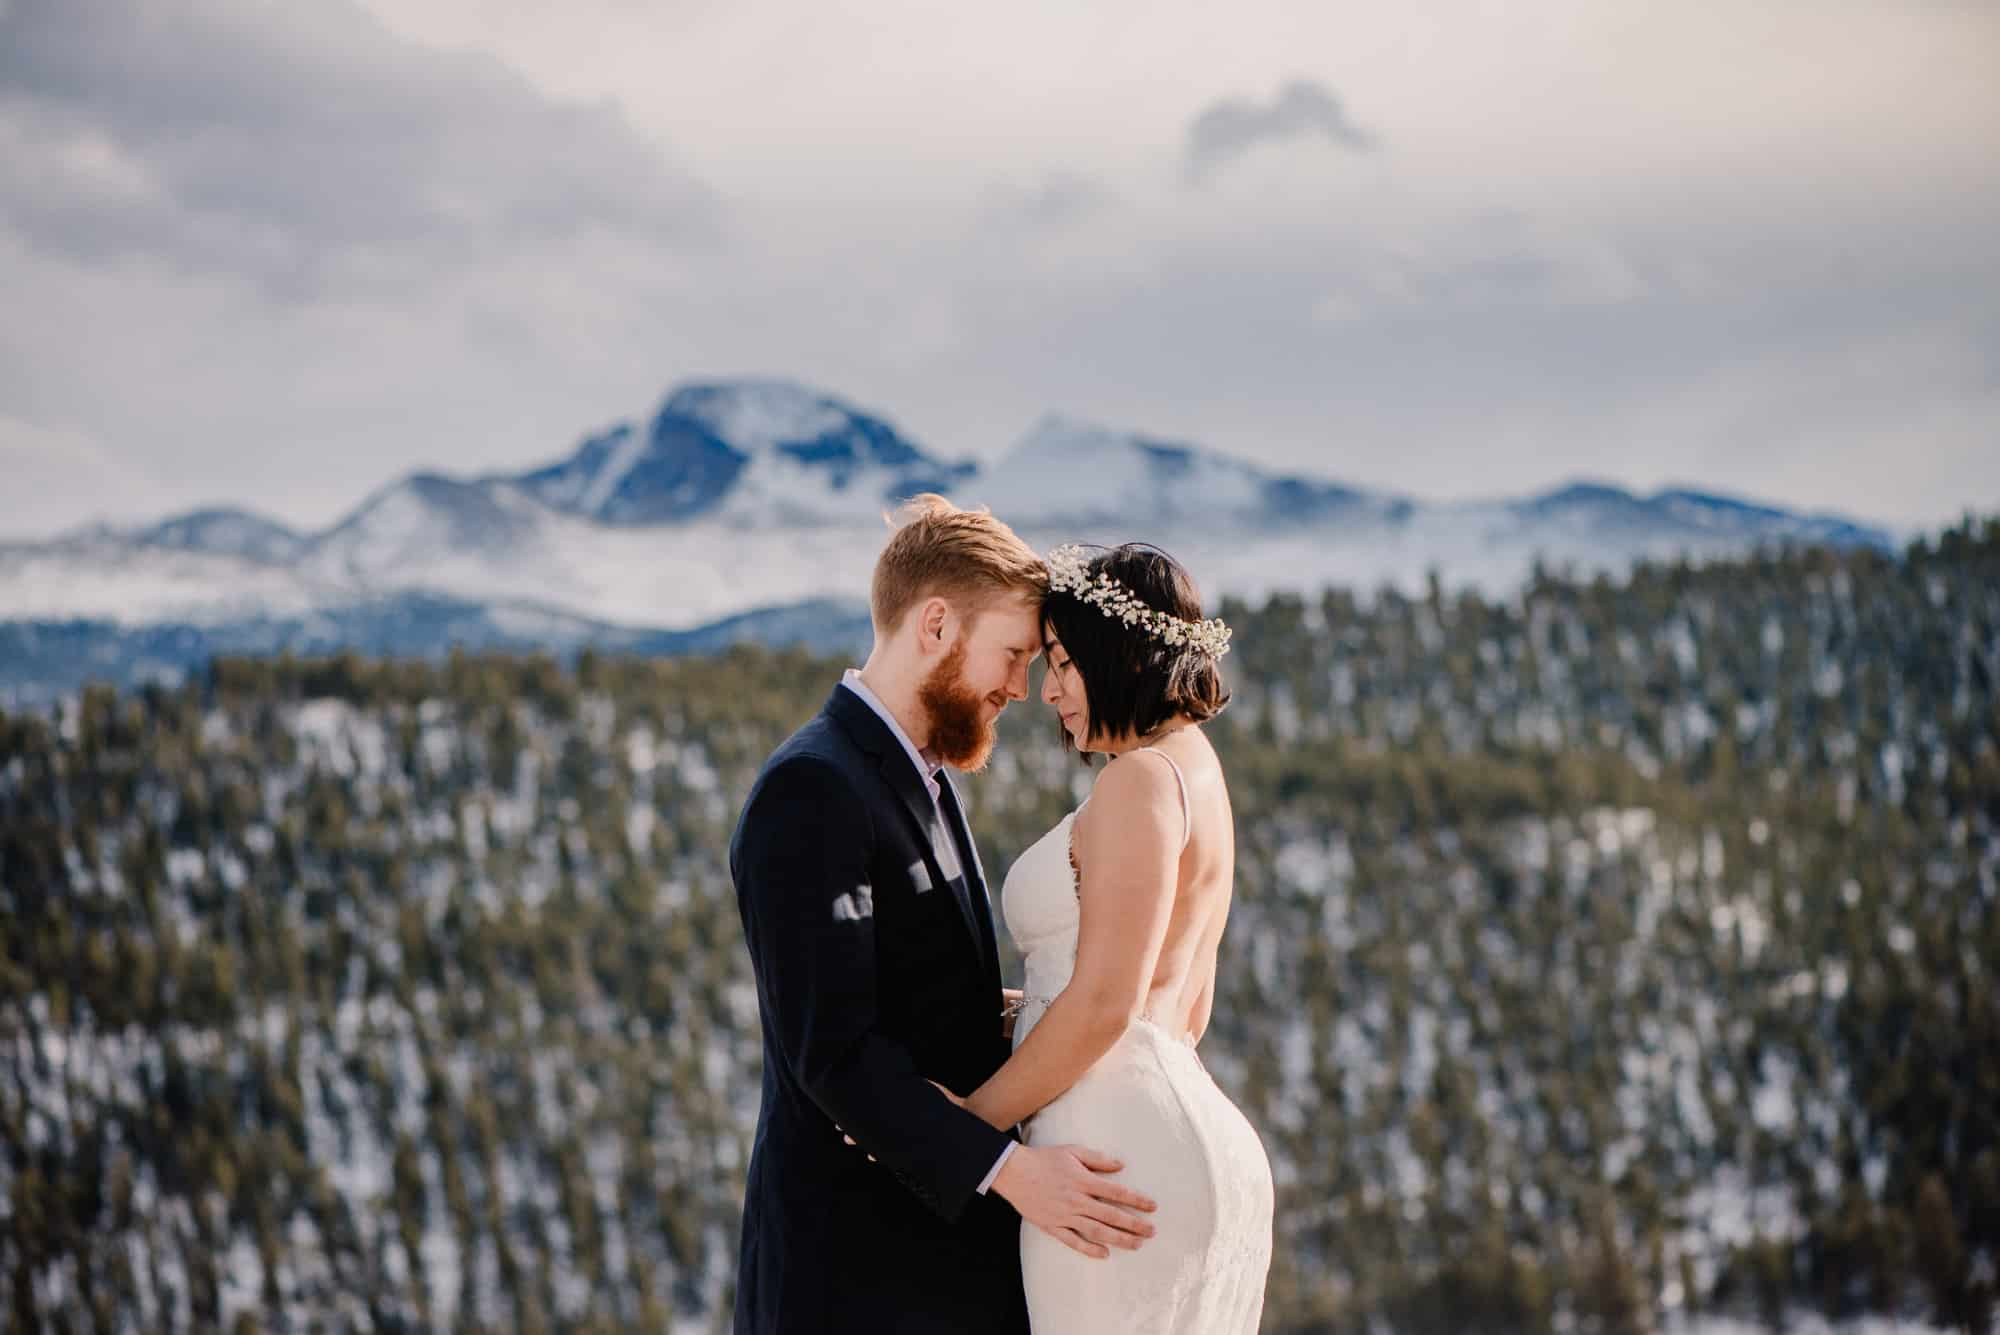 coupe having a rocky mountain national park wedding cuddling with mountains in the background